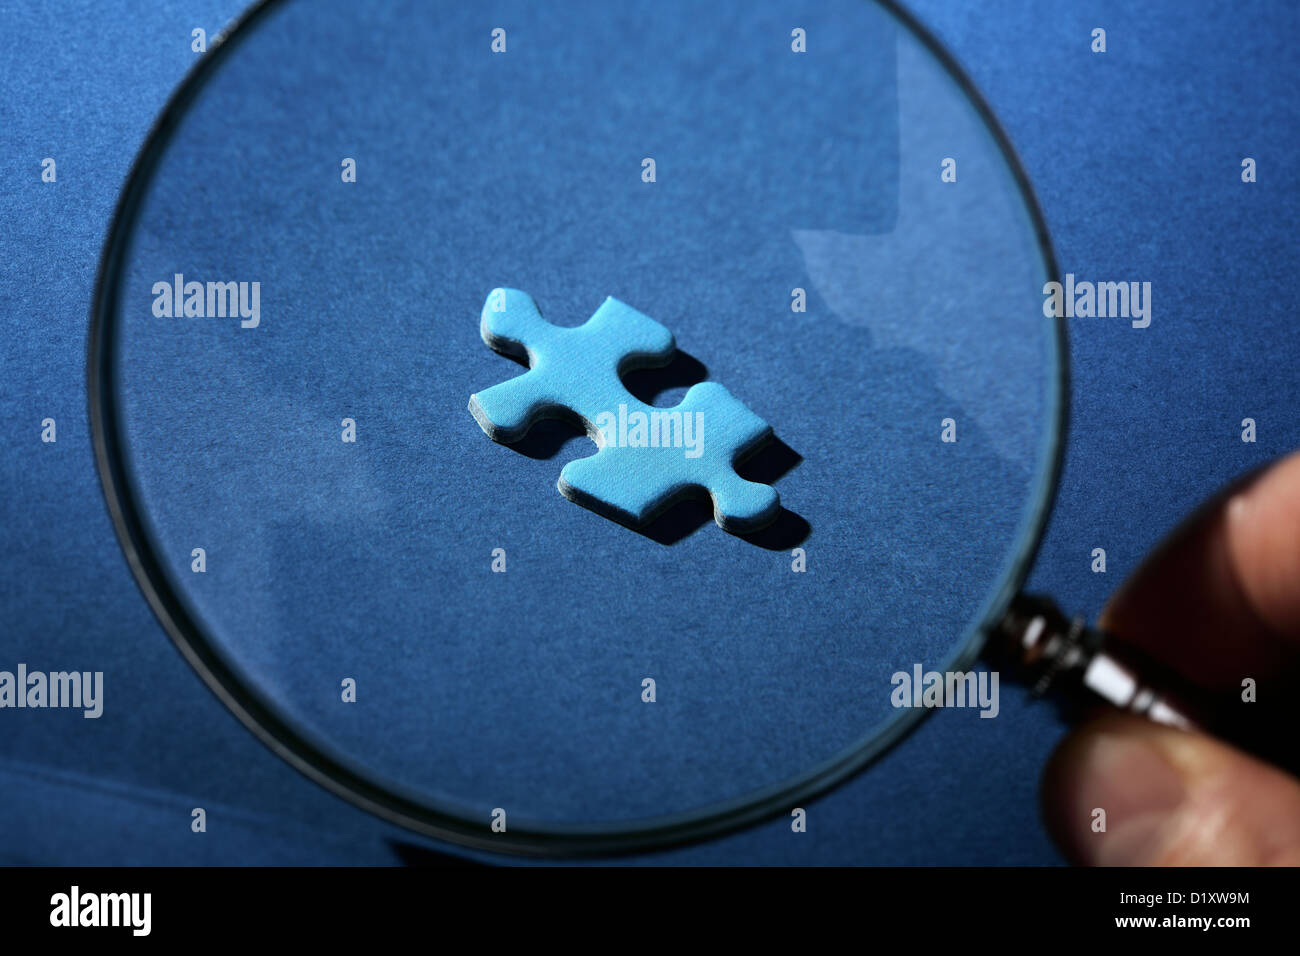 Missing piece of the puzzle - Stock Image